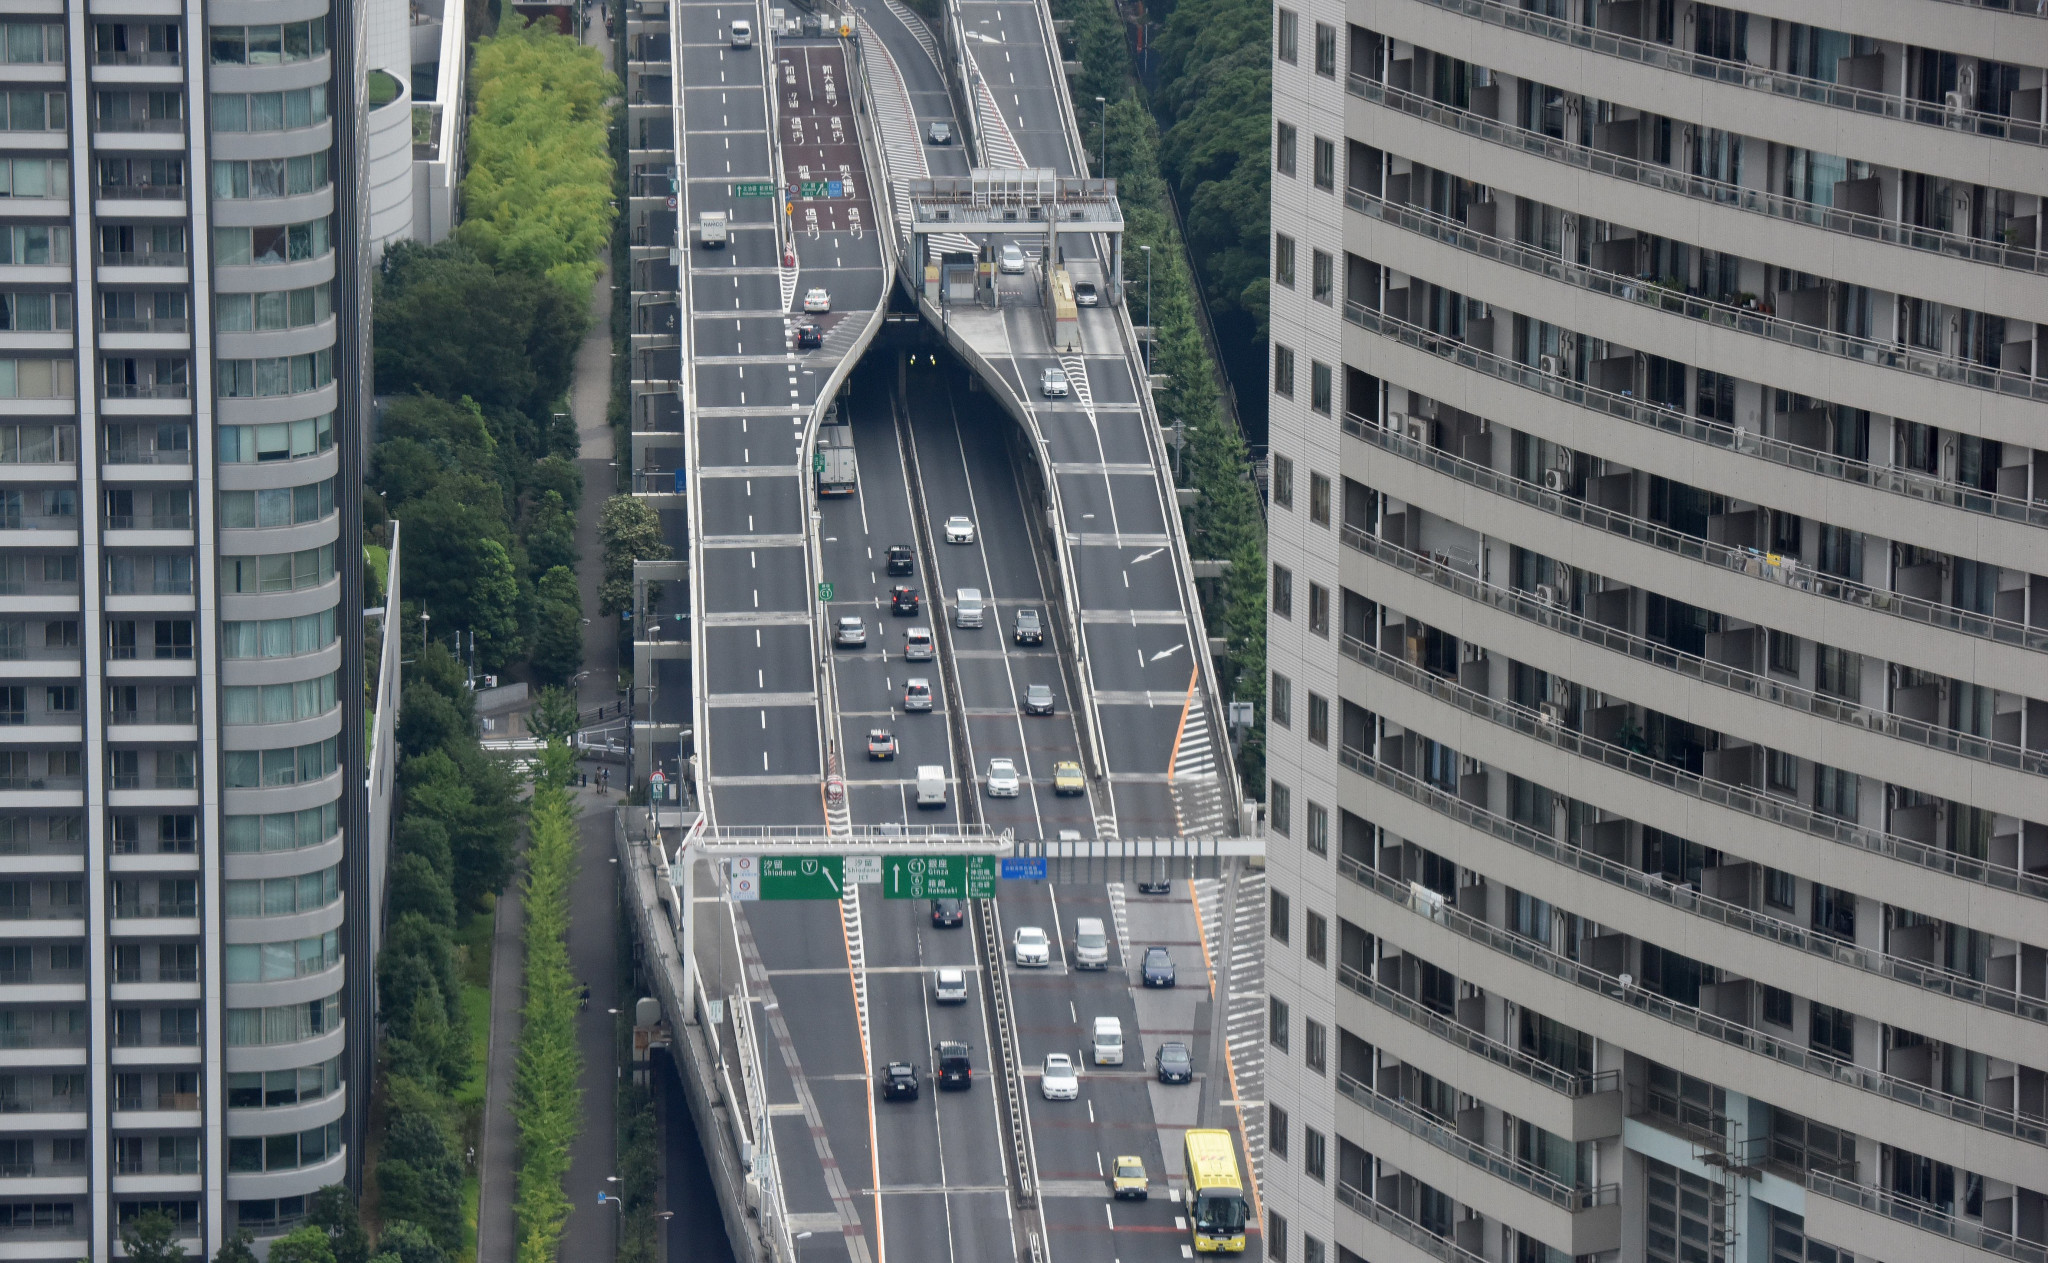 Plans prepared to increase toll surcharges for Metropolitan Expressway during Tokyo 2020 Olympic Games